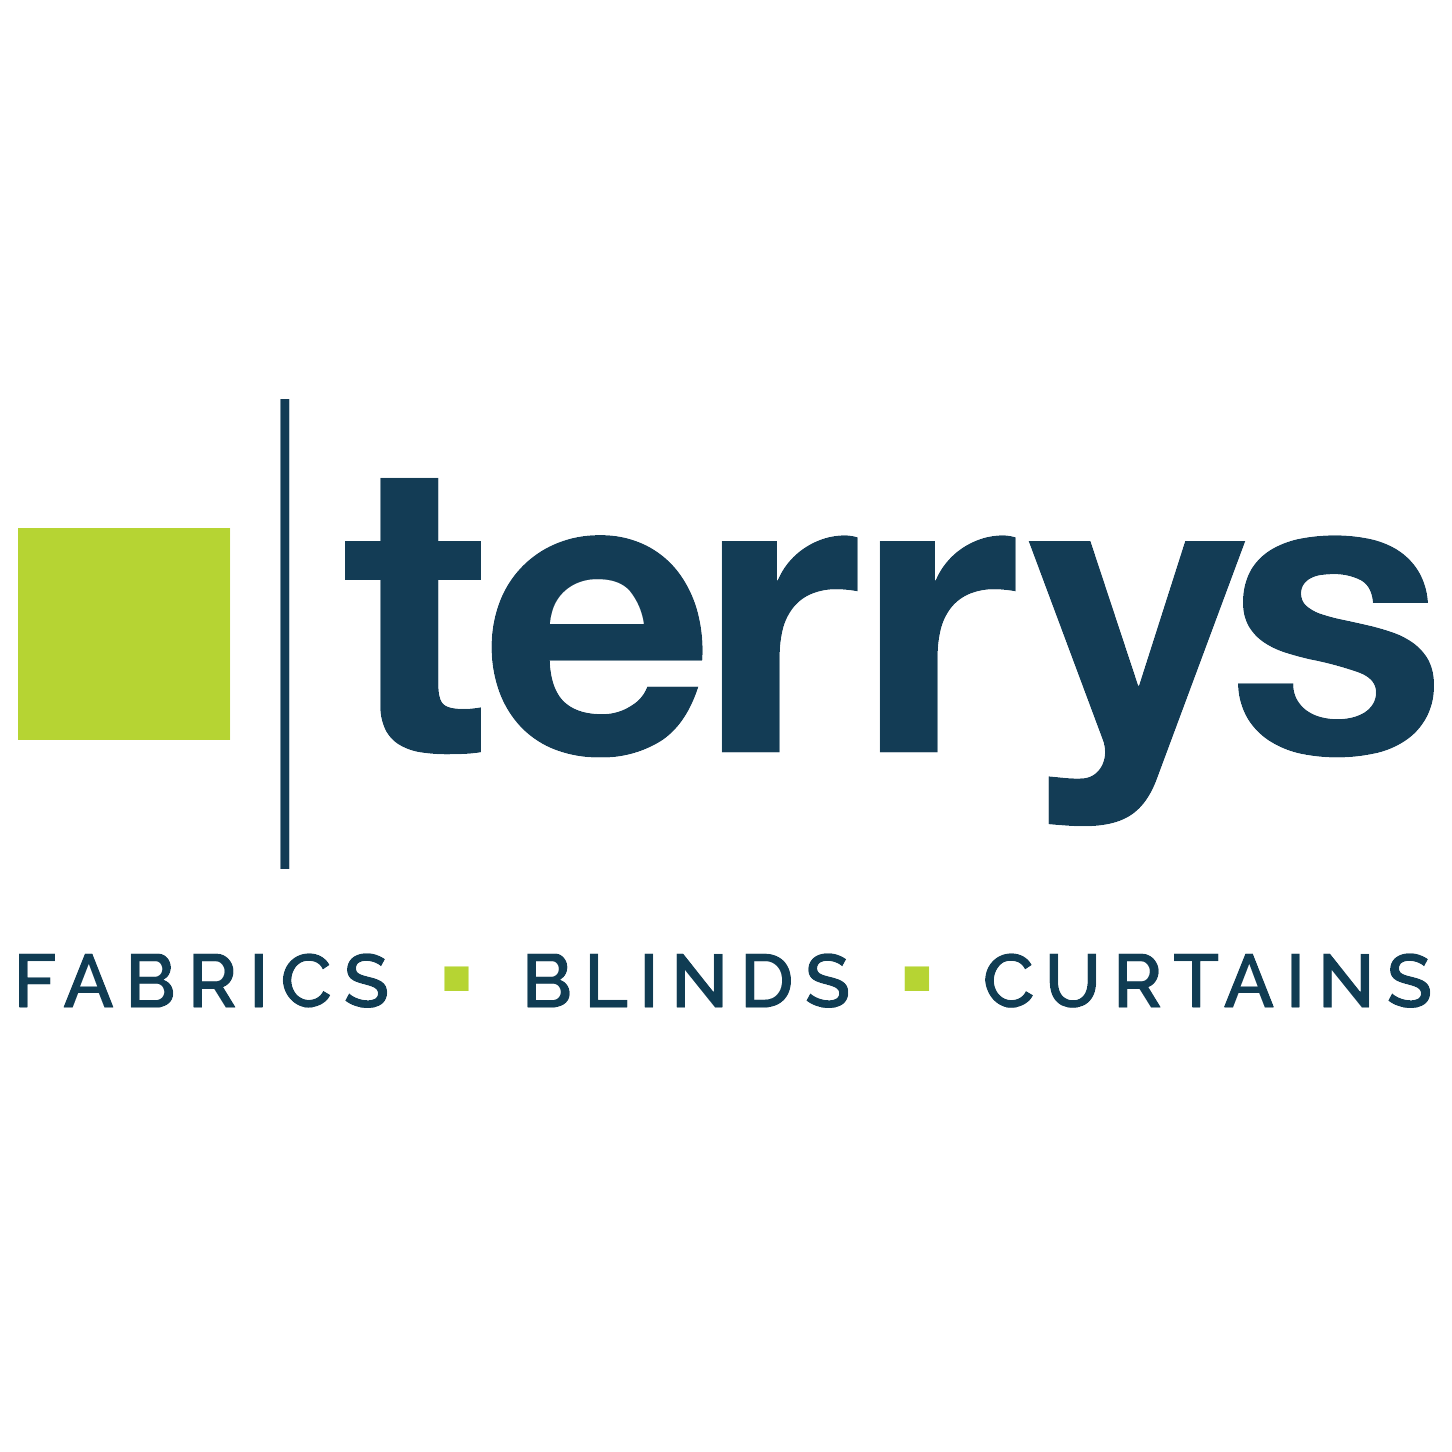 https://www.channelunity.com/wp-content/uploads/2021/02/Terrs-logo-for-homepage.png